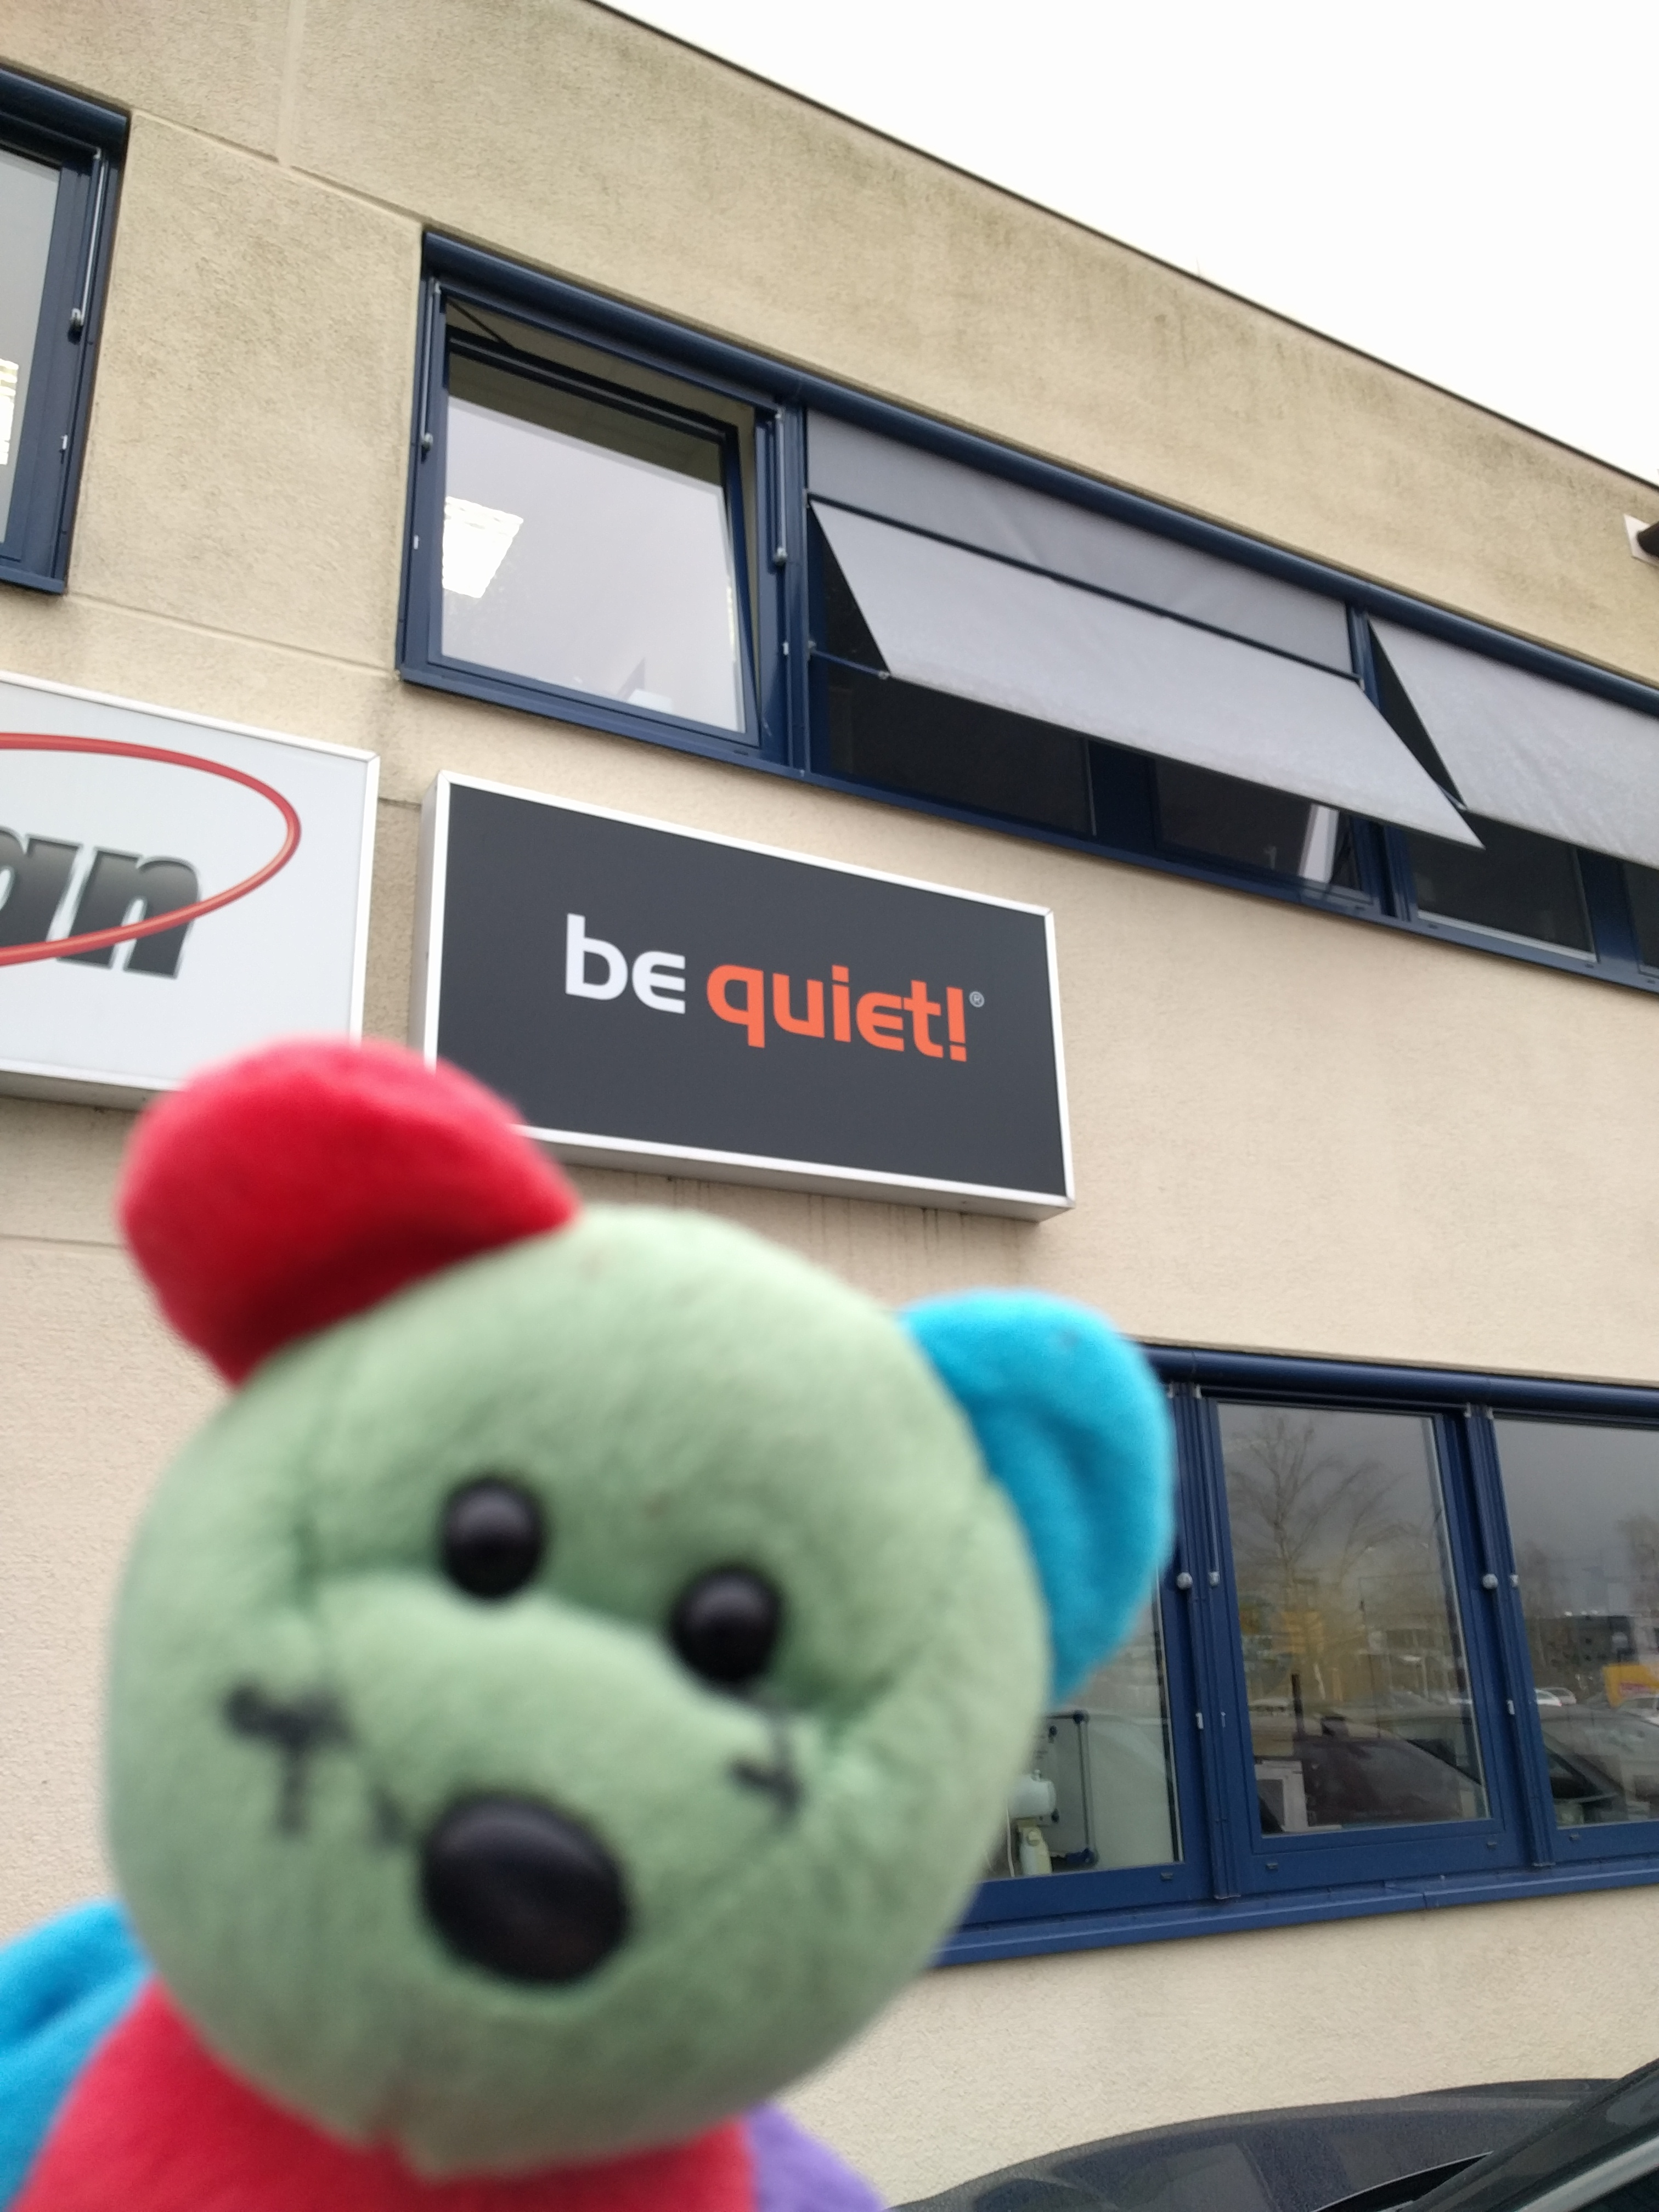 My Geeky Trip to Germany – Day 4 – be quiet! .